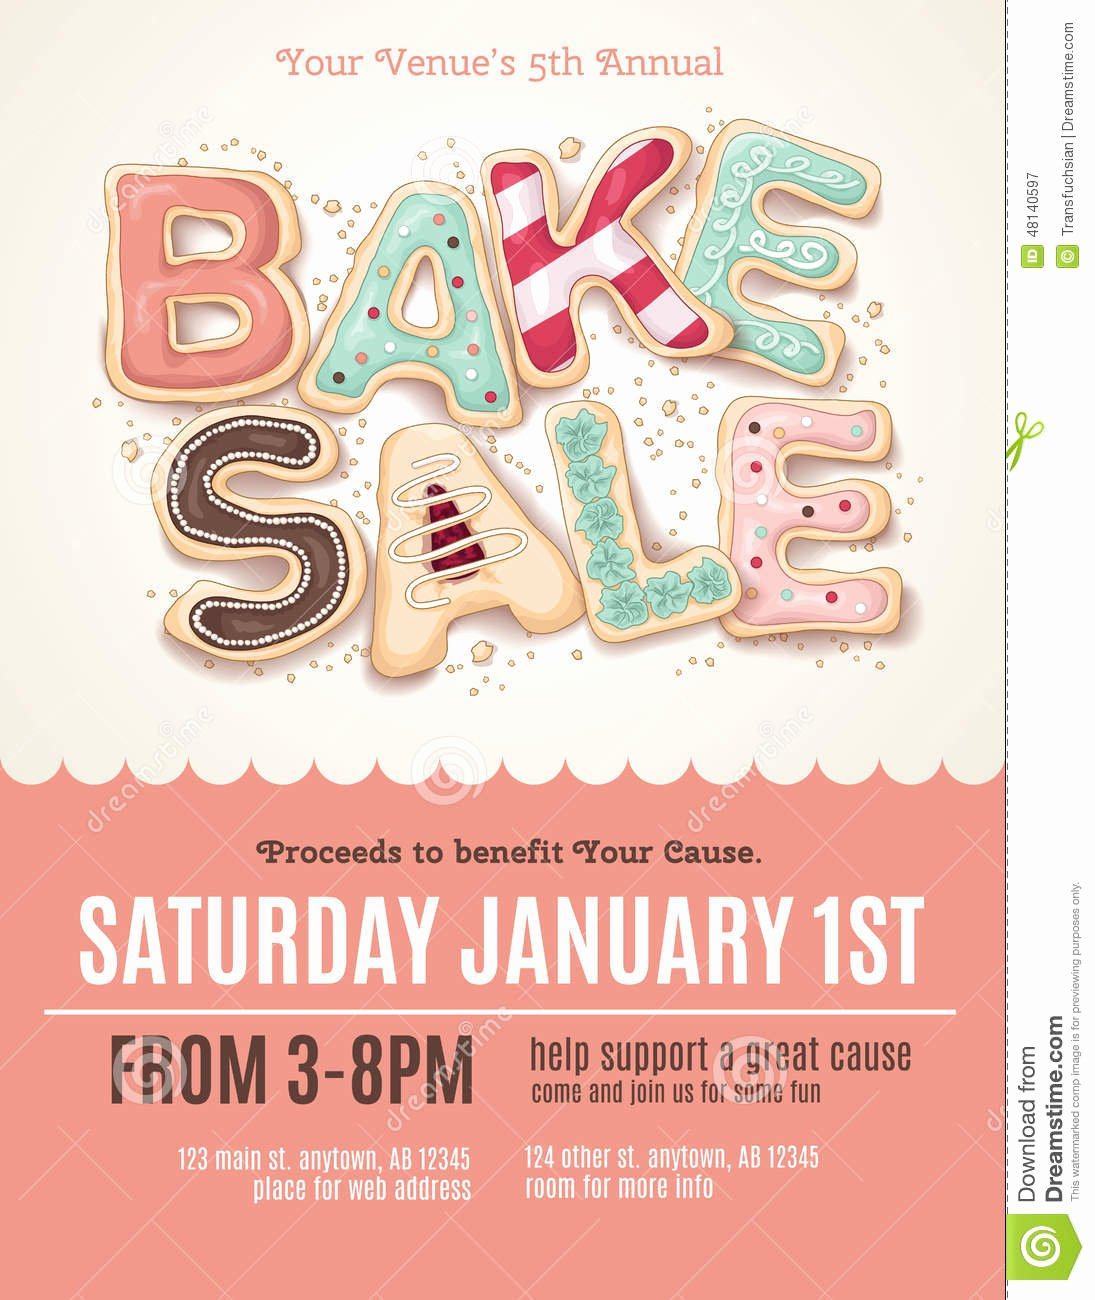 Bake Sale Flyer Template Lovely Fun Cookie Bake Sale Flyer Template Stock Vector